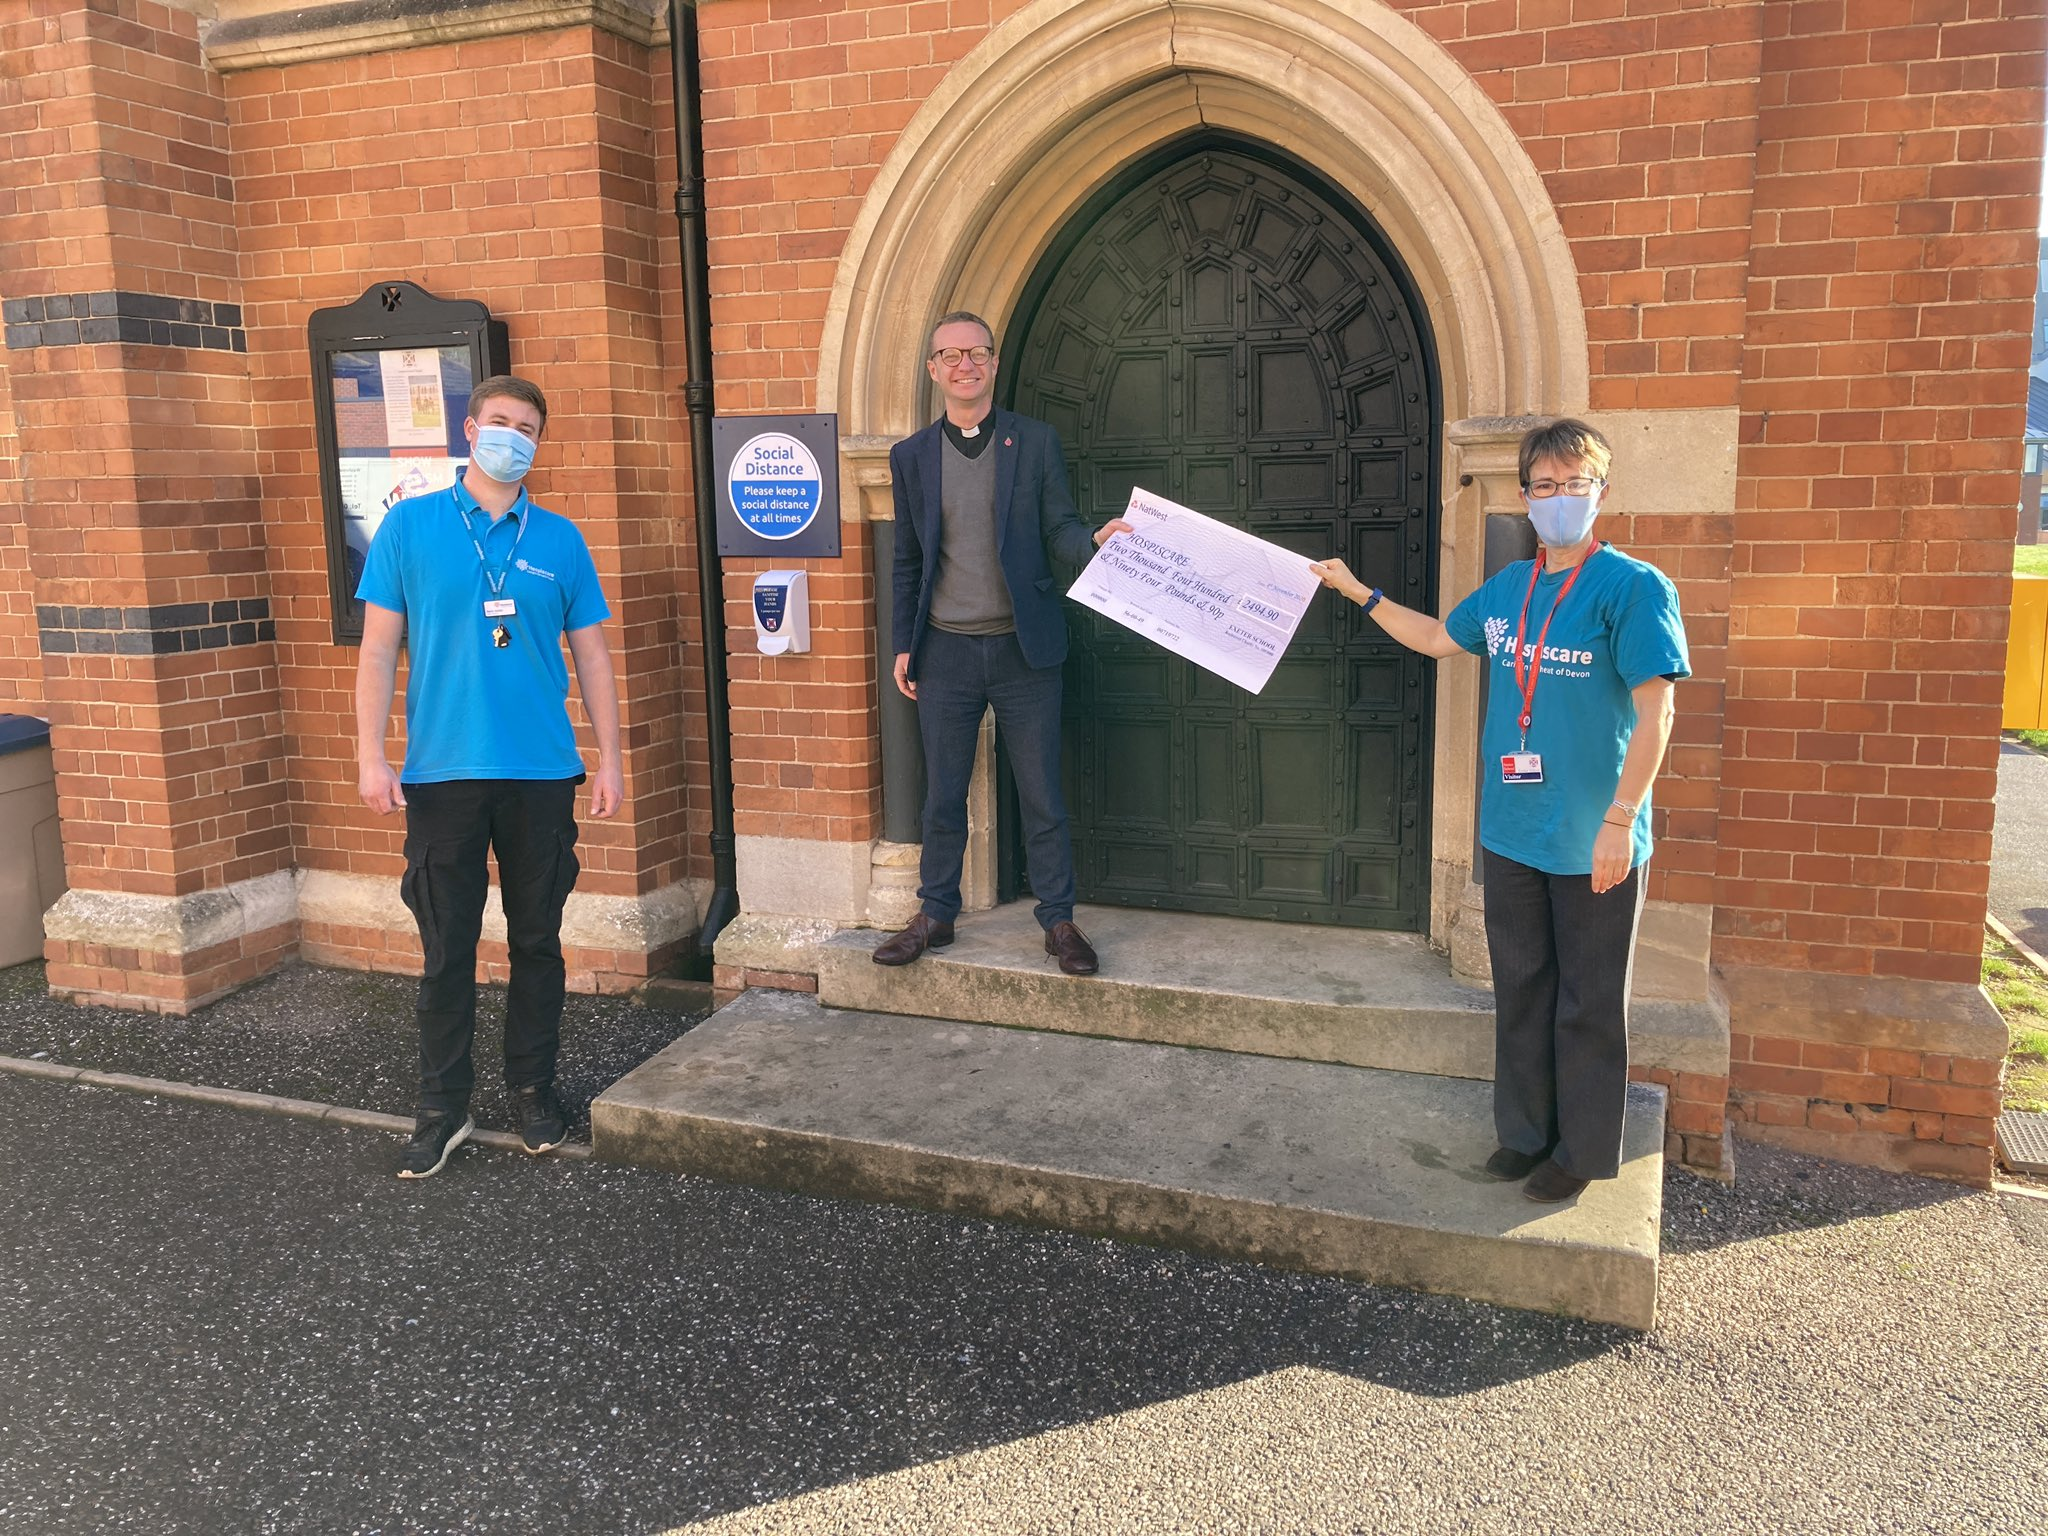 Hospiscare Heroes – From chaplain's charities to Open Gardens